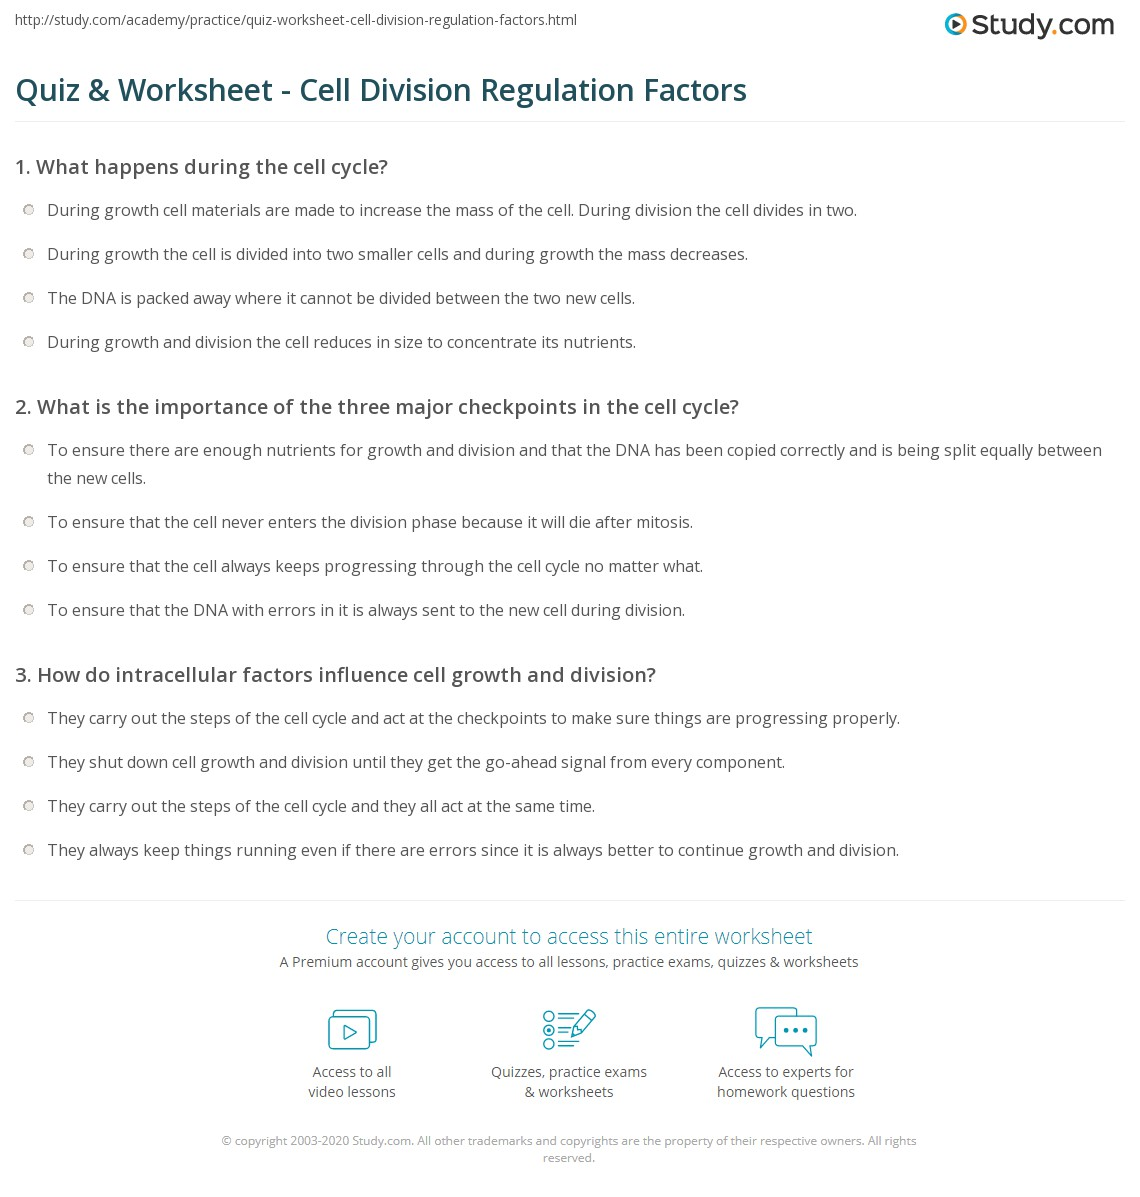 Quiz Worksheet Cell Division Regulation Factors Study